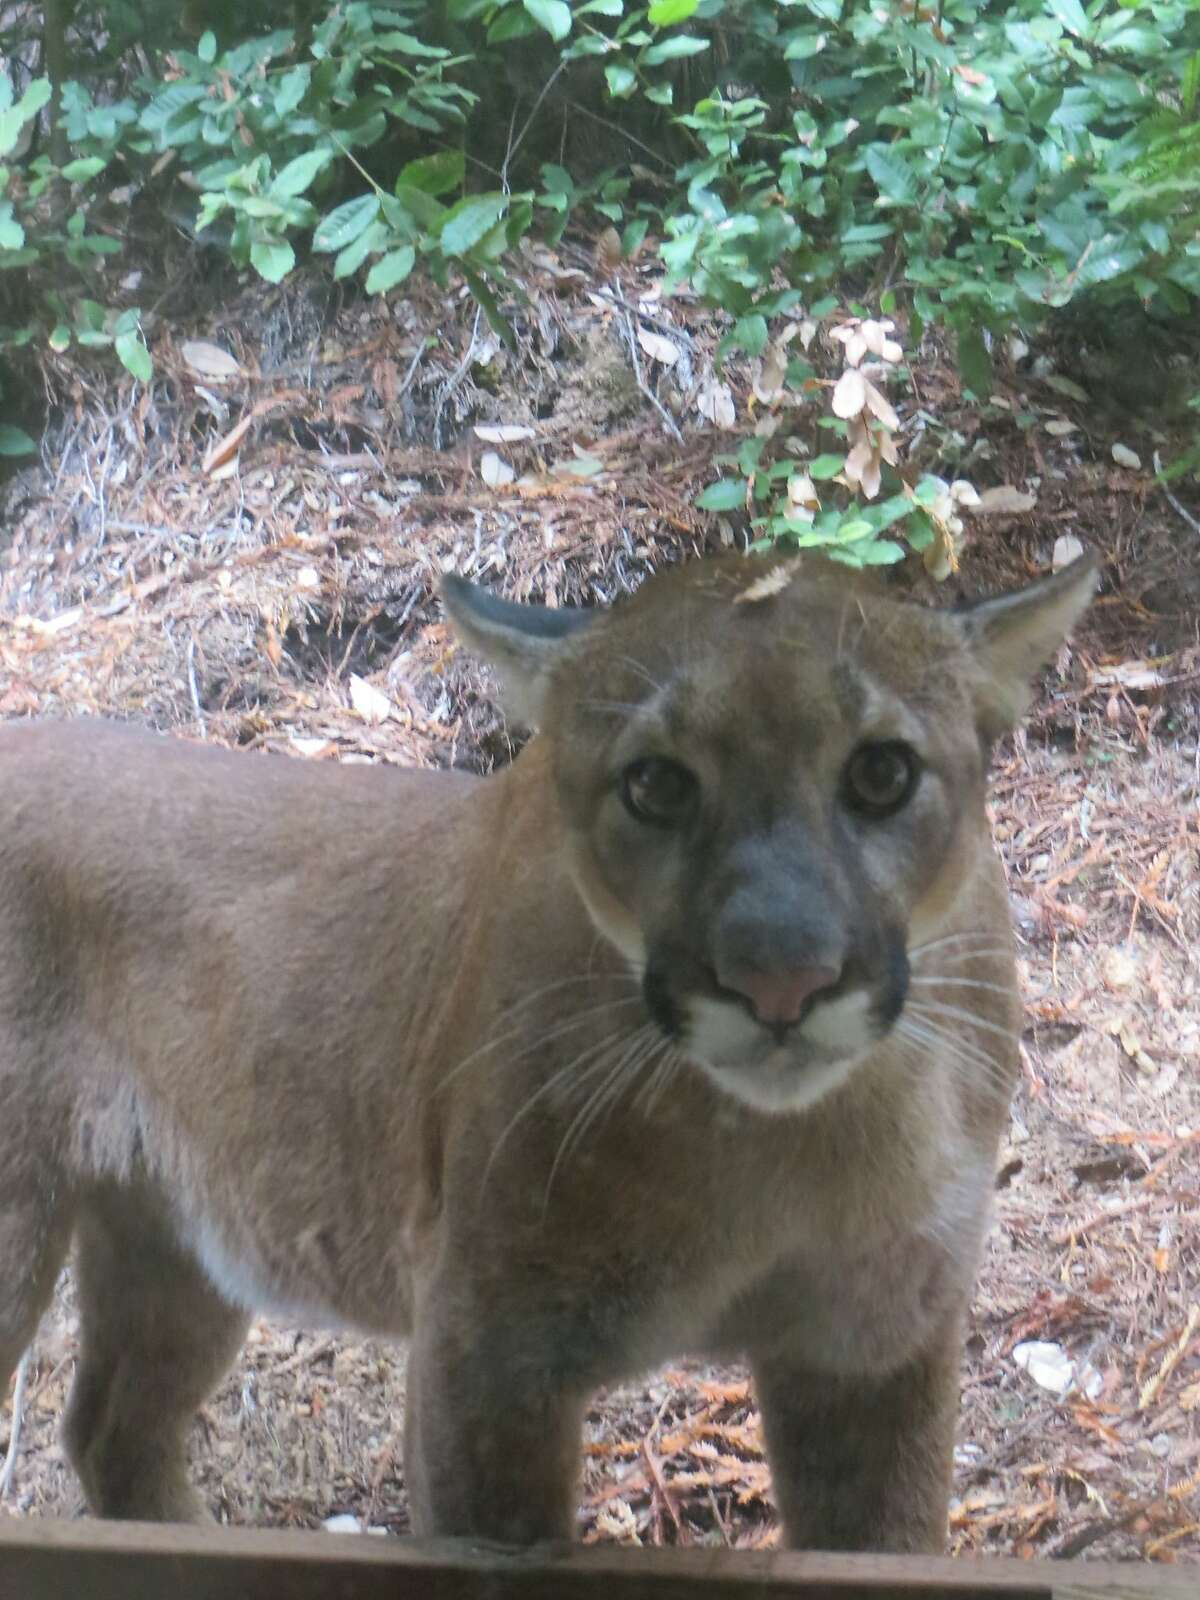 While at a desk at her home in Gualala in Mendocino County, Cece Case heard a noise, turned and found this mountain lion staring at her through the window. Cece believes the lion may have hunting her house cats.File photo taken on Sept. 12, 2014.